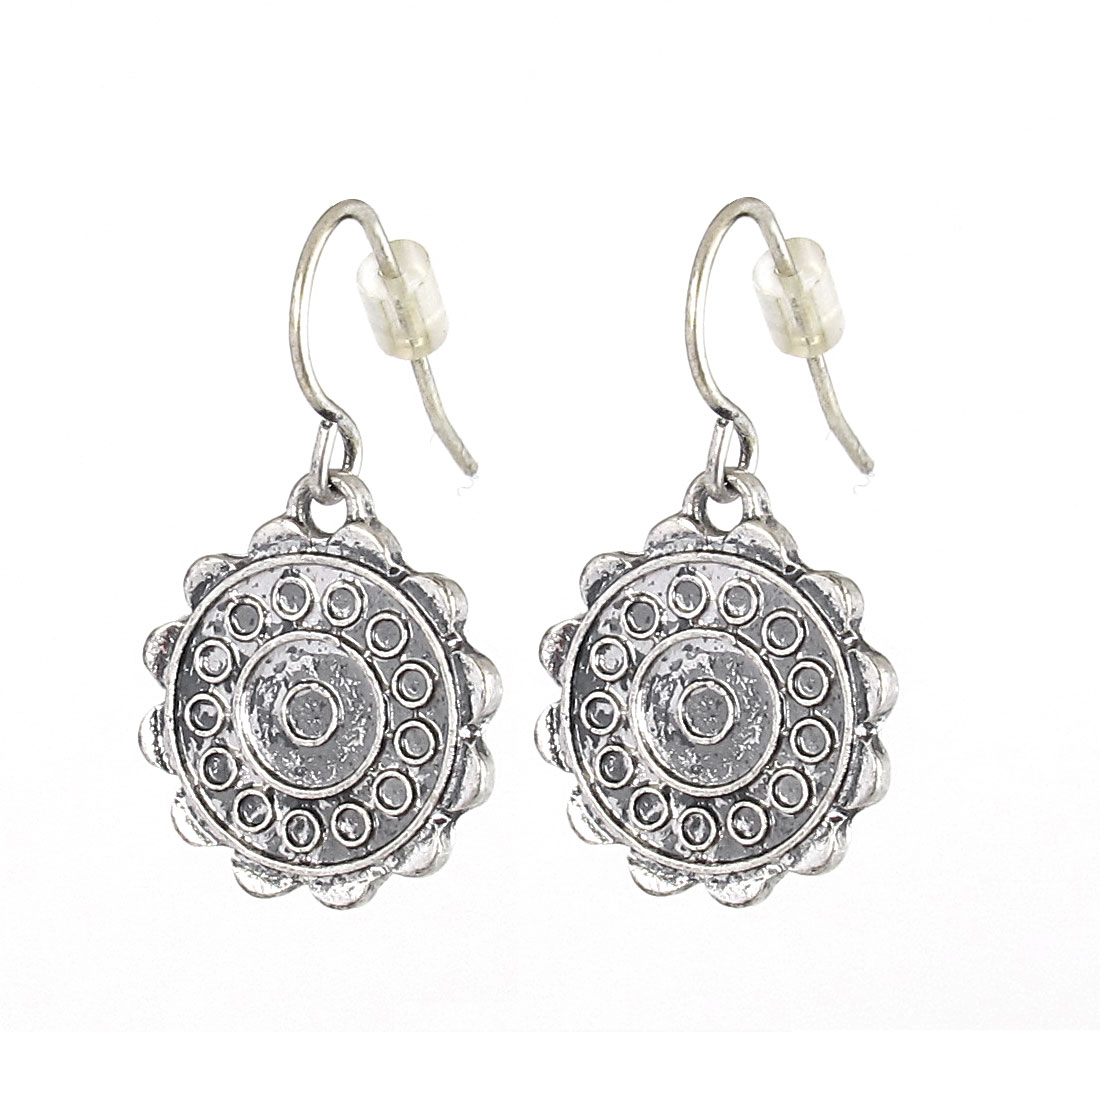 "Women Metal Mignon Filled Circle Little Round Pattern Dangling Pendant Hook Earrings Earbobs Eardrop Silver Tone 1"" Length Pair"